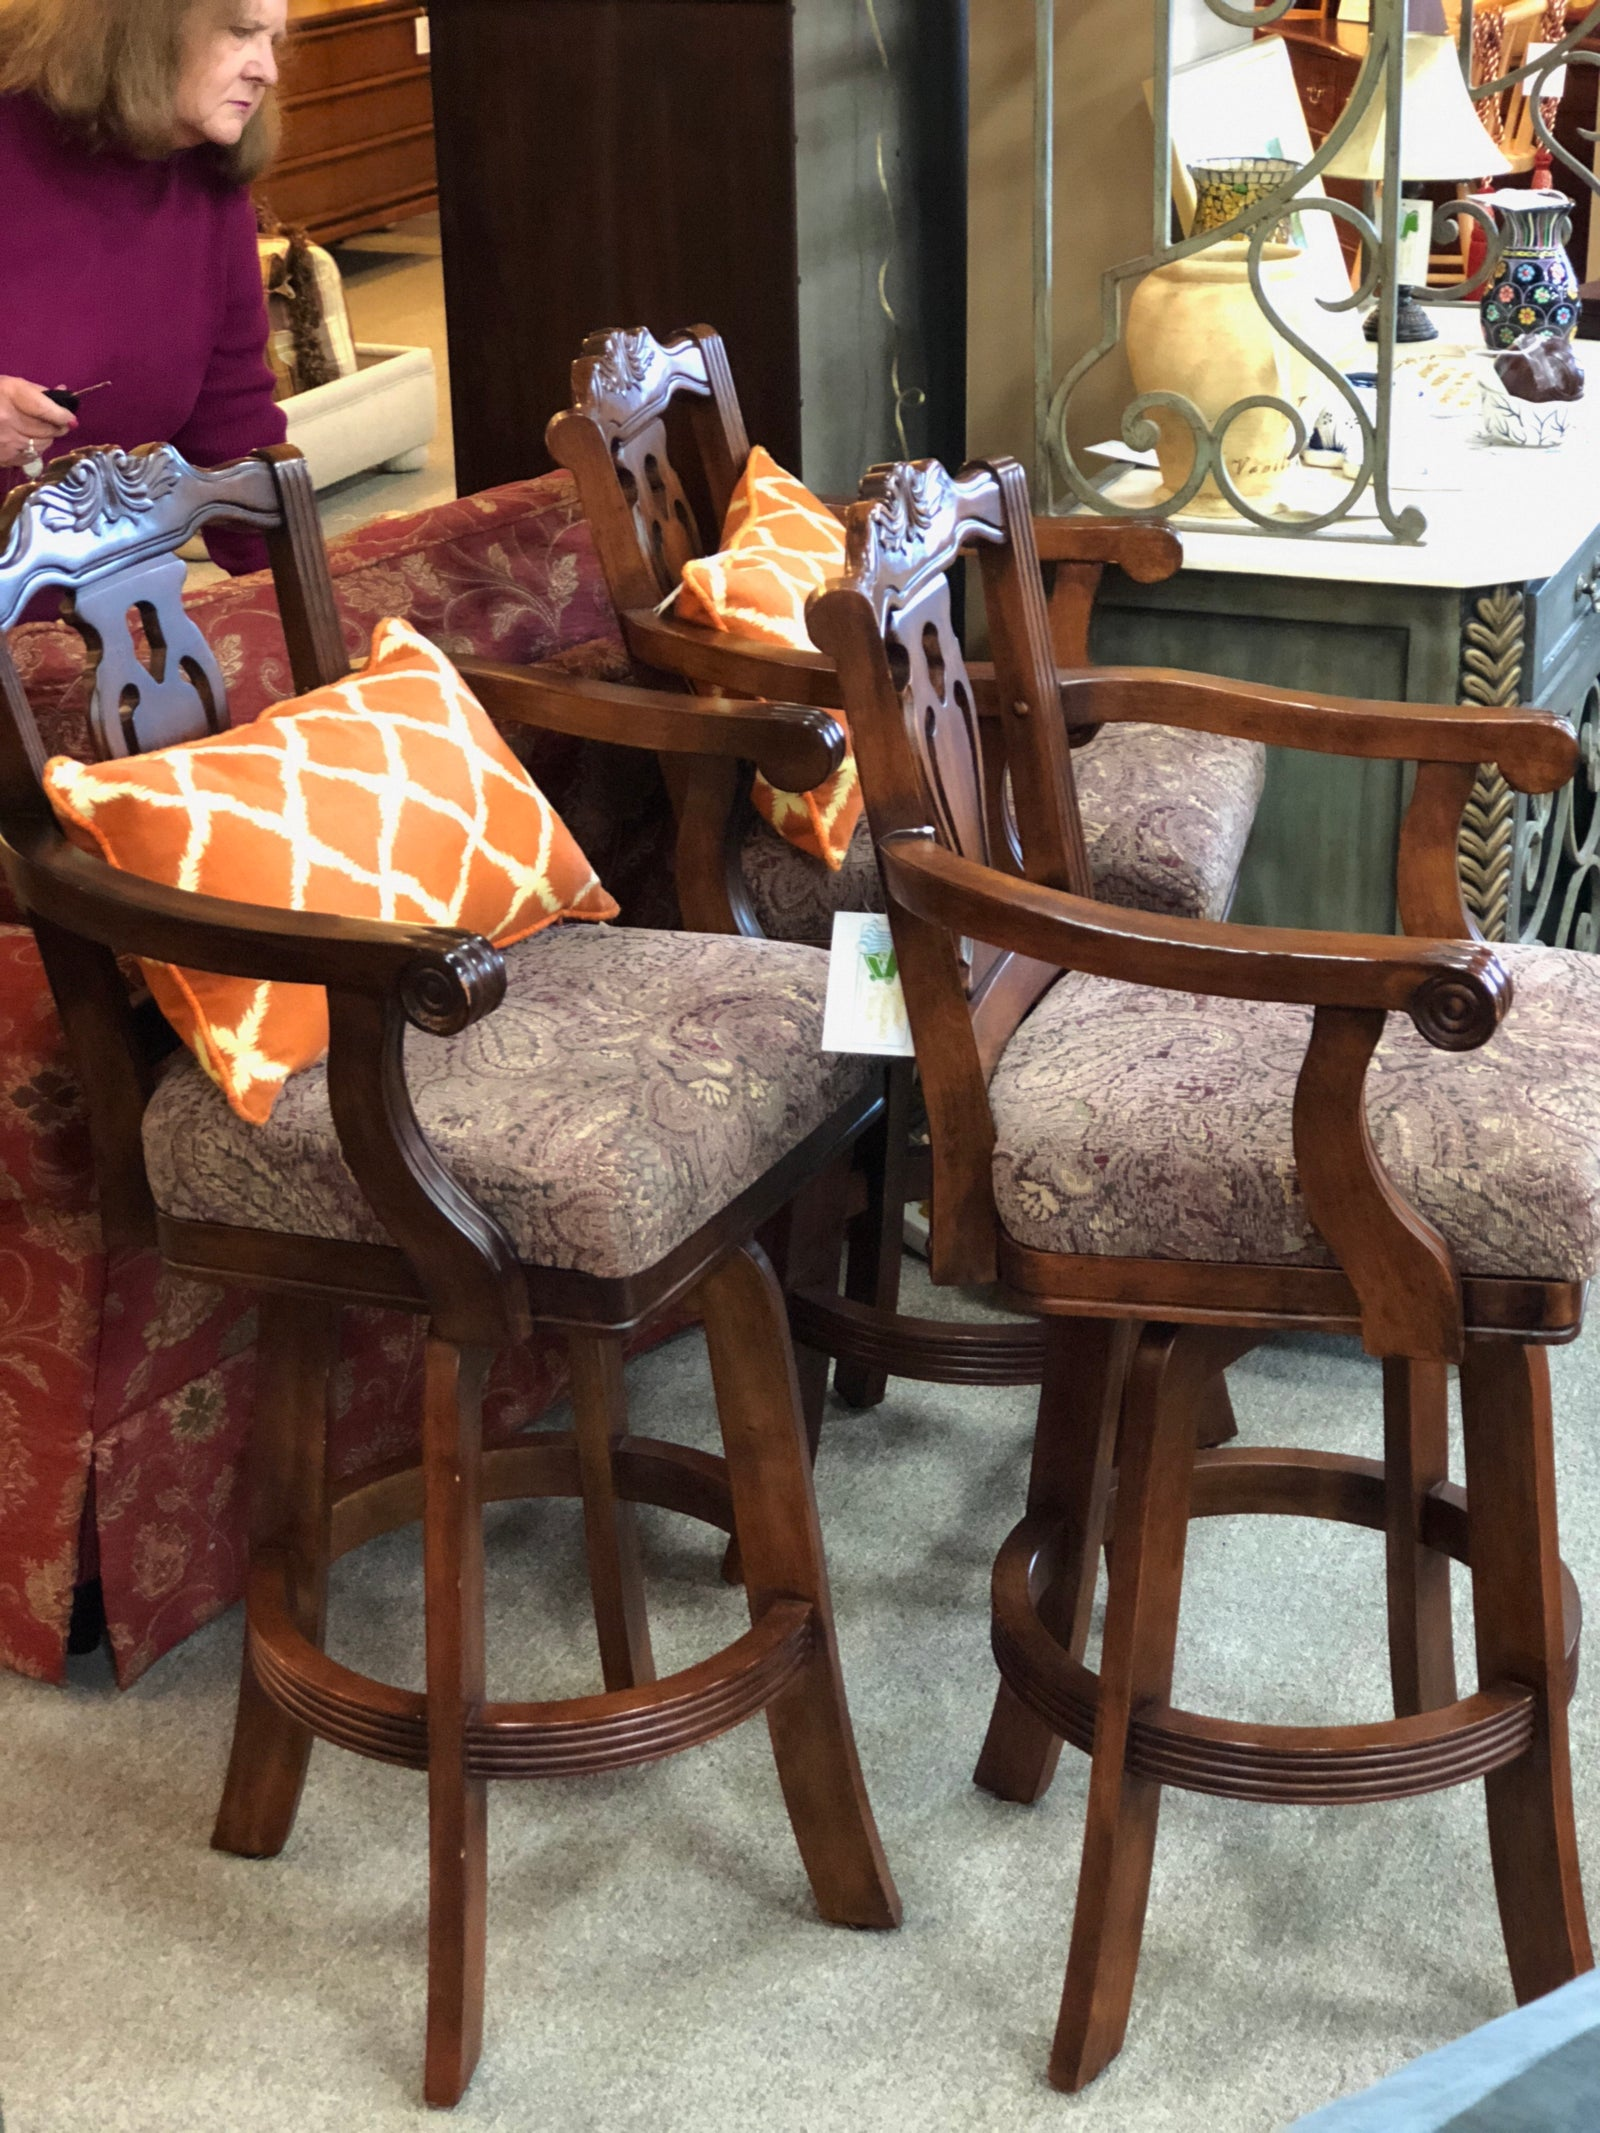 Set of 3 Barstools